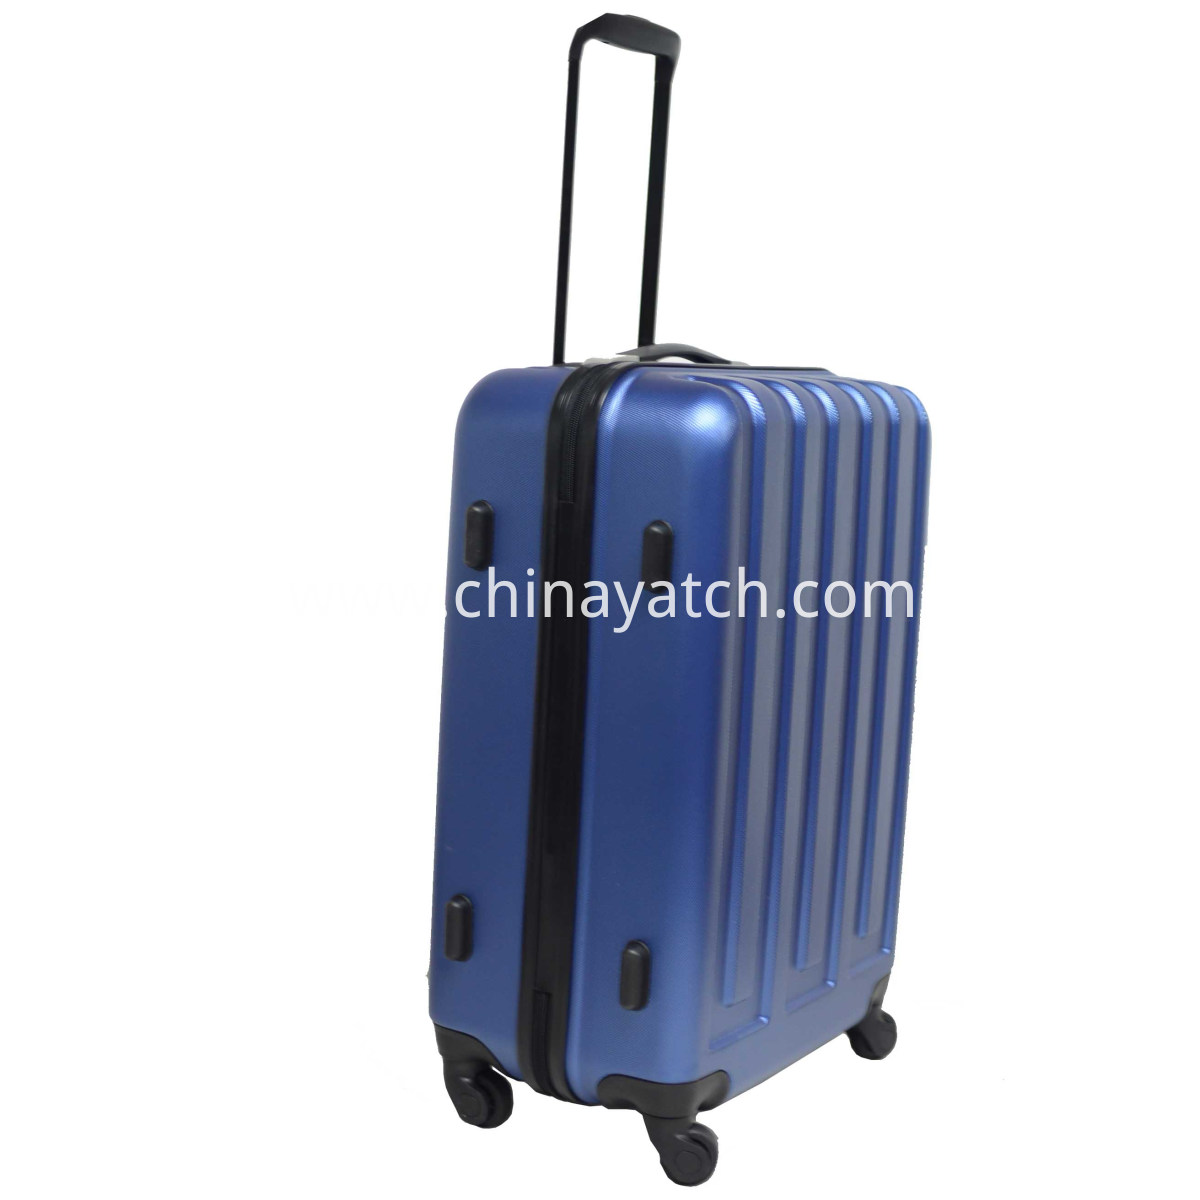 alloy luggage side view